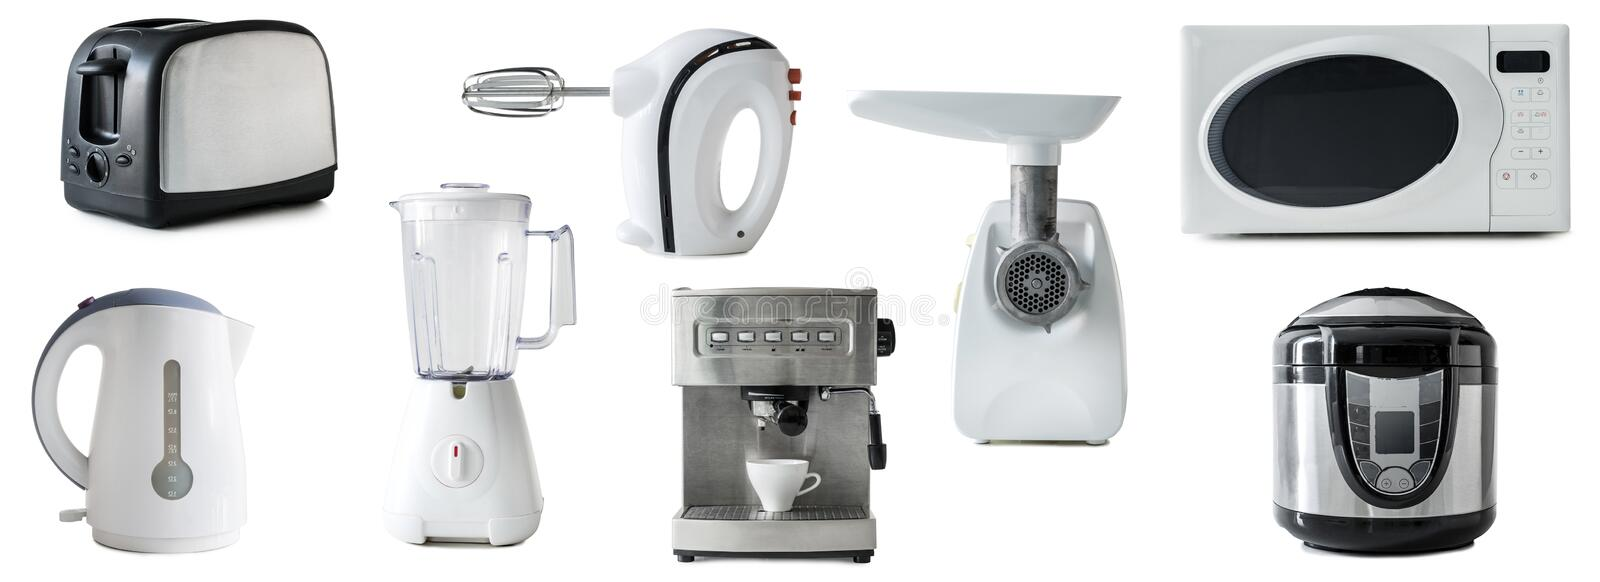 Collage Of Different Types Of Kitchen Appliances Isolated Stock ...